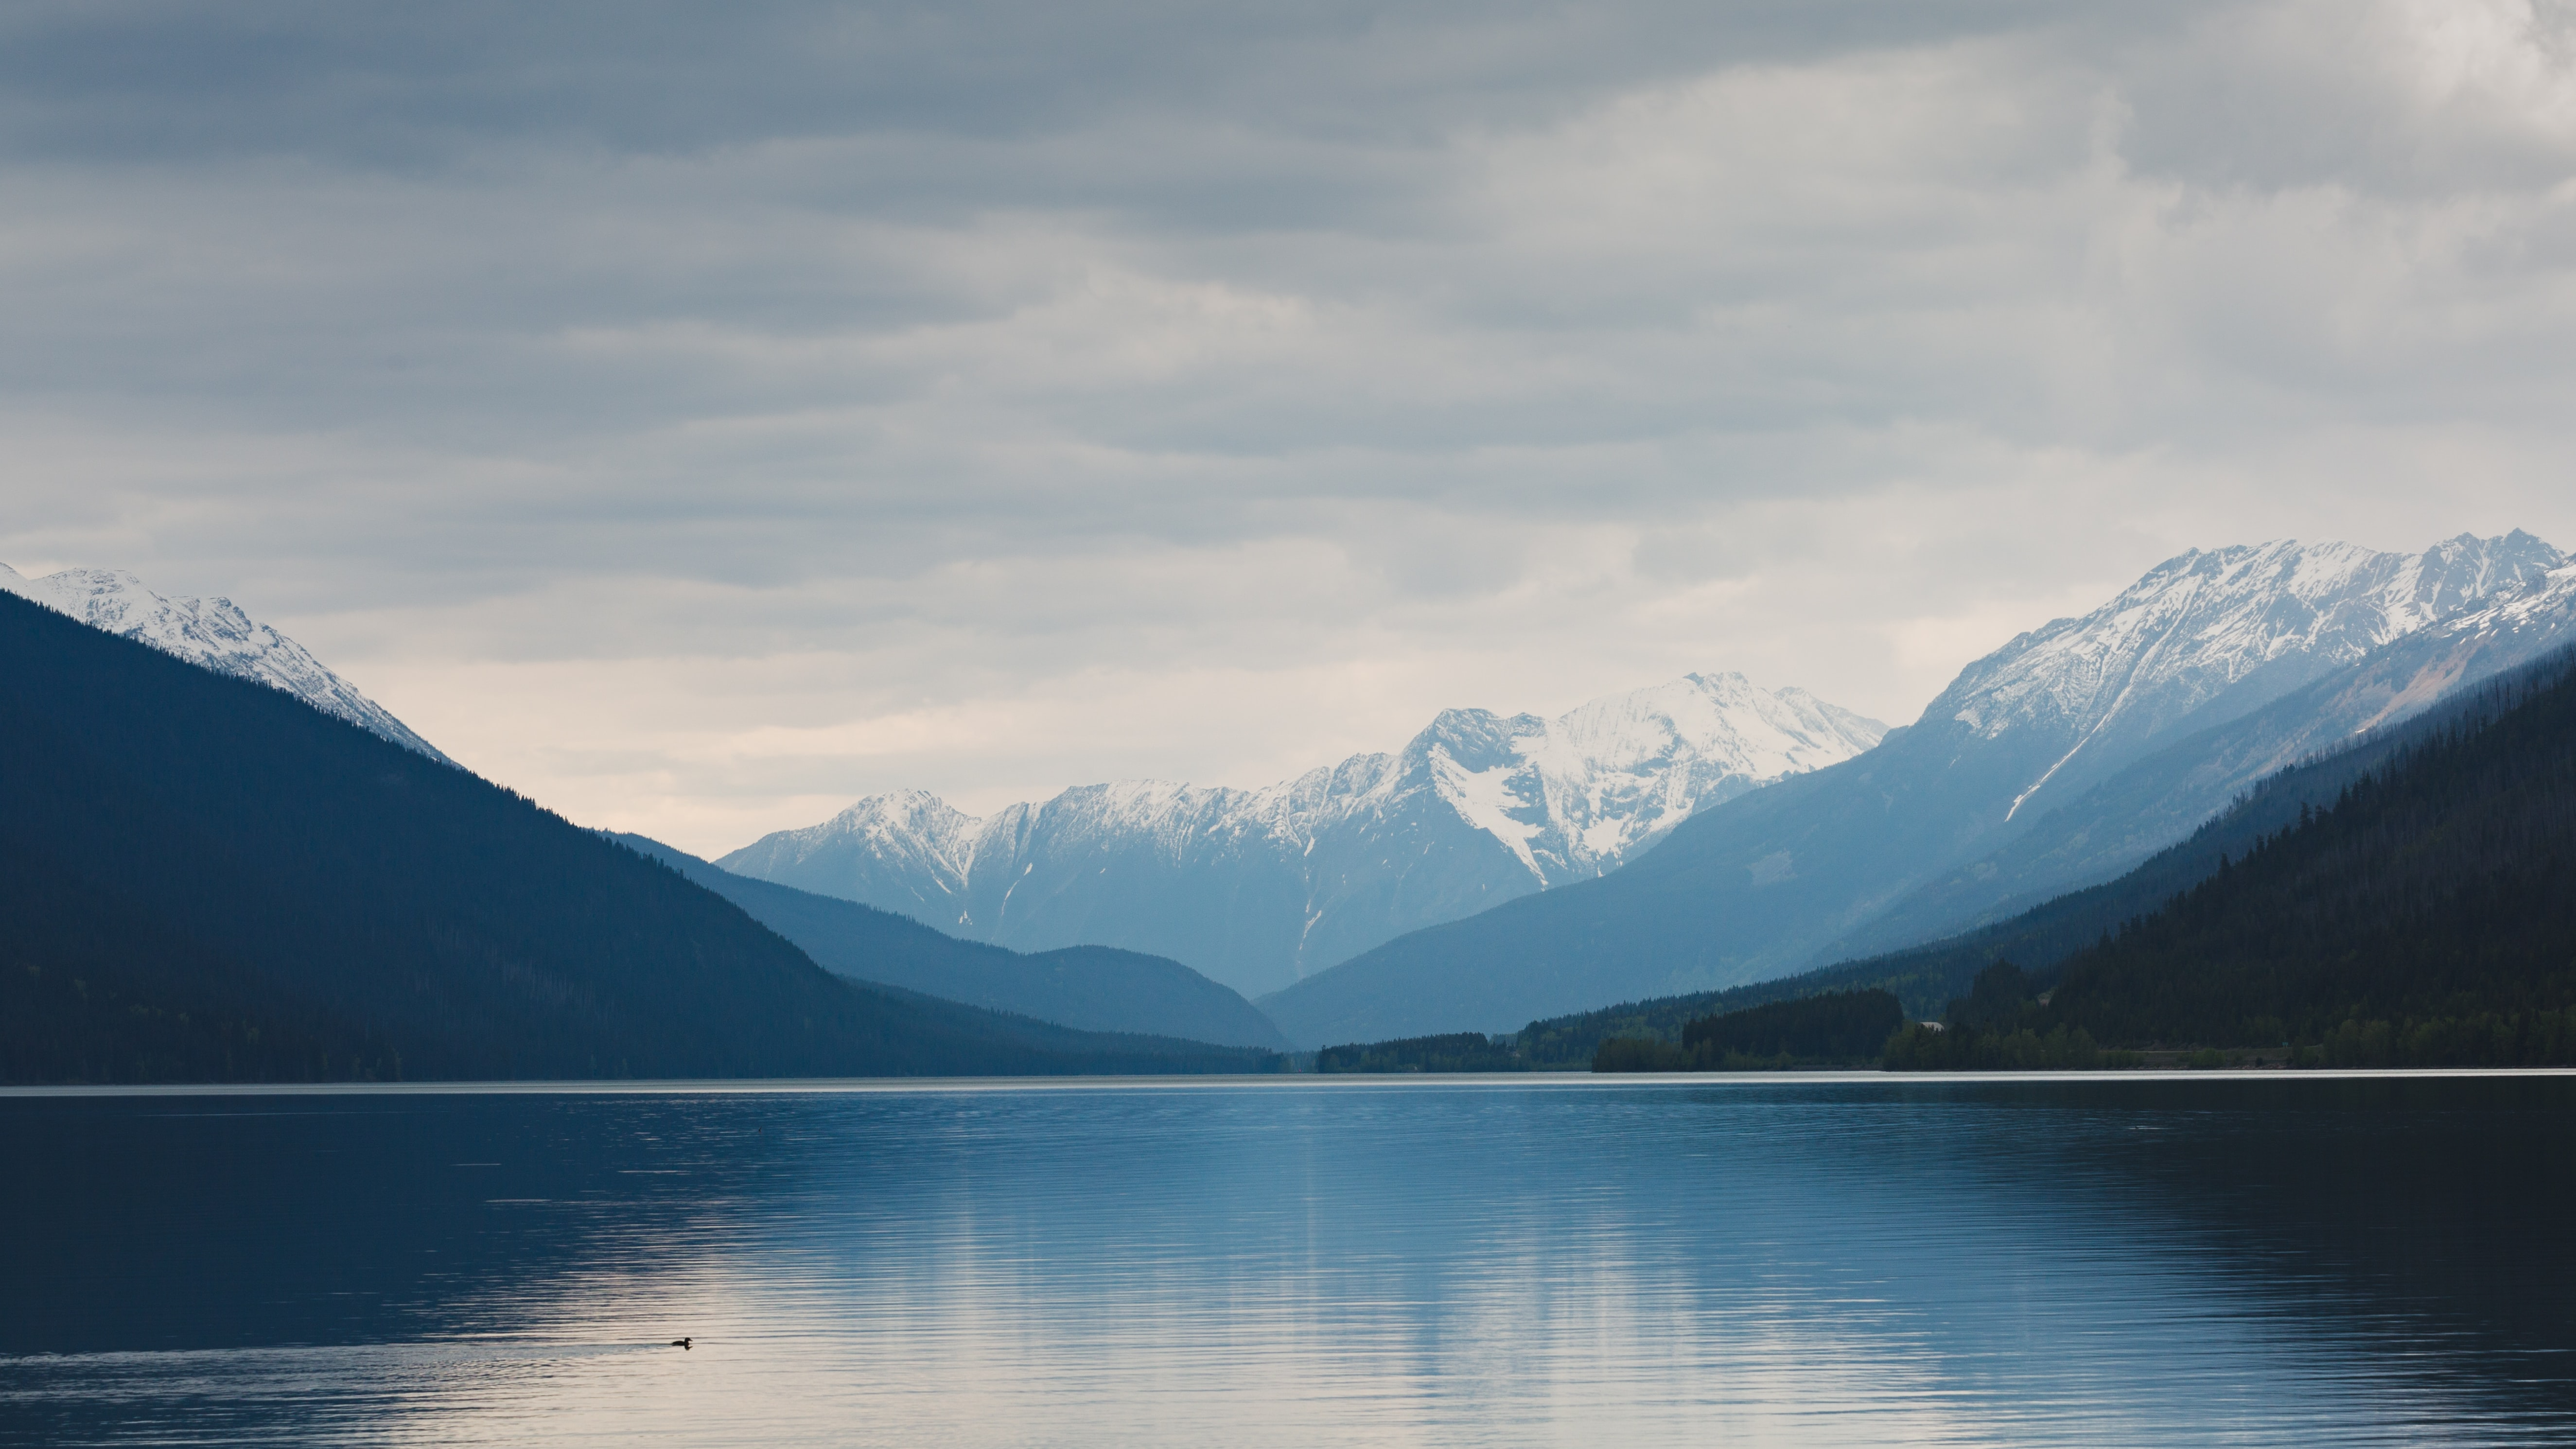 A landscape view of snow covered mountains next to calm blue water in cloudy weather.